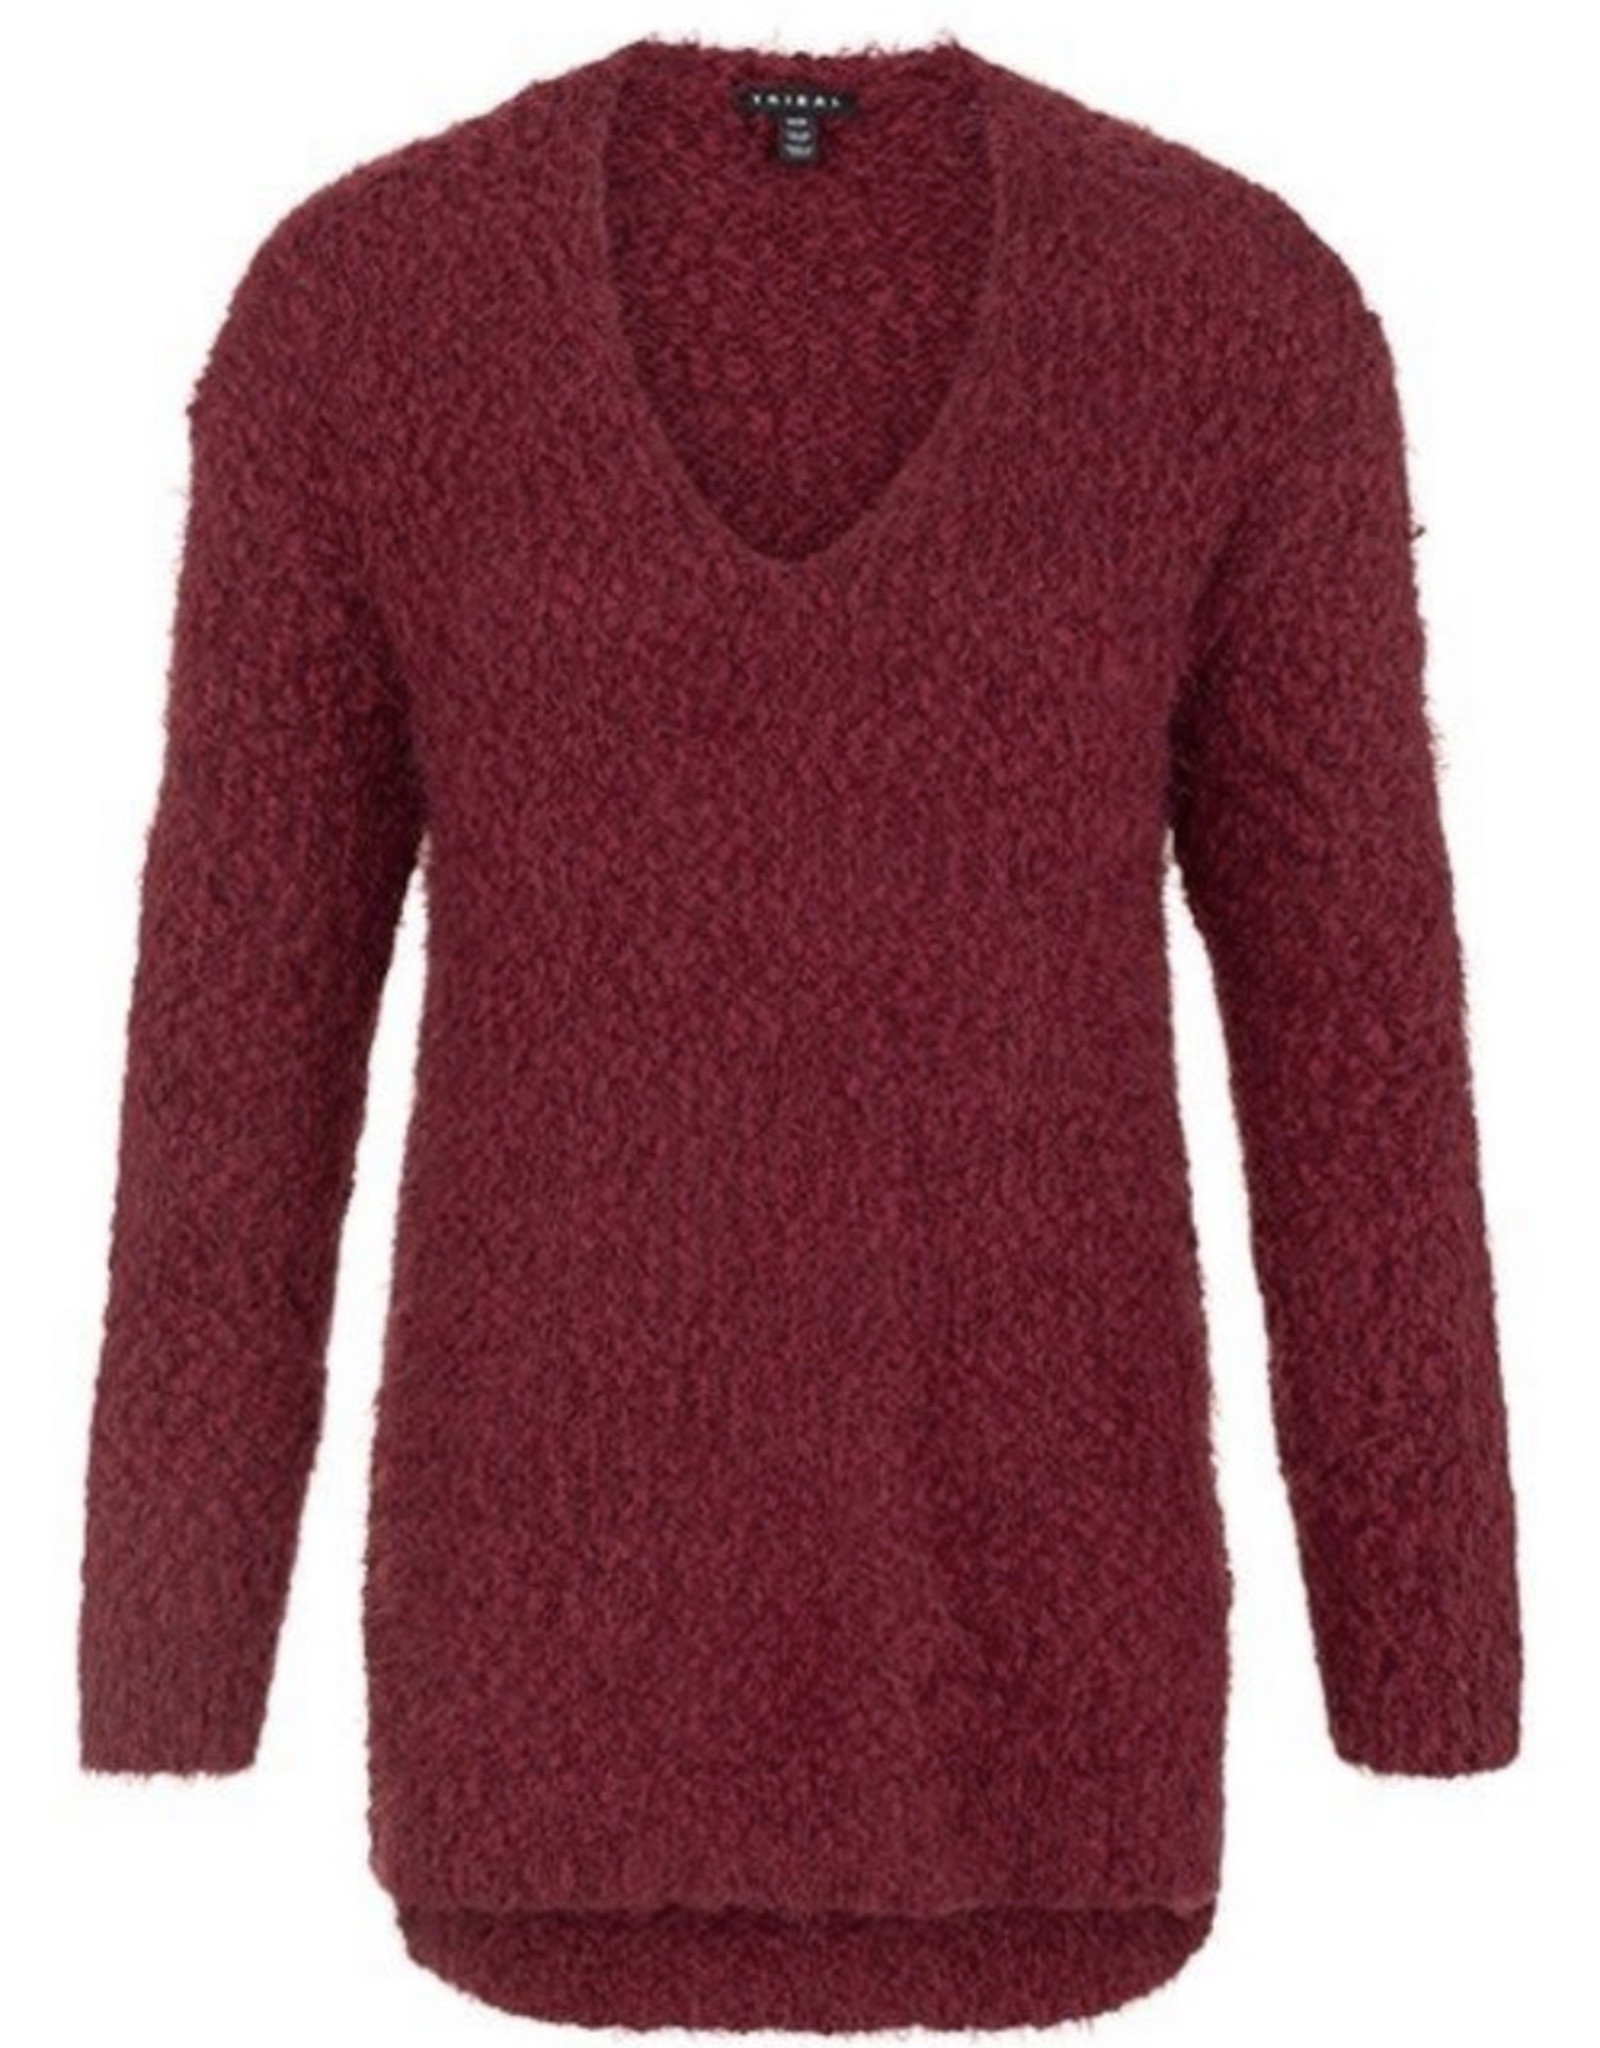 V-neck sweater-Cabernet